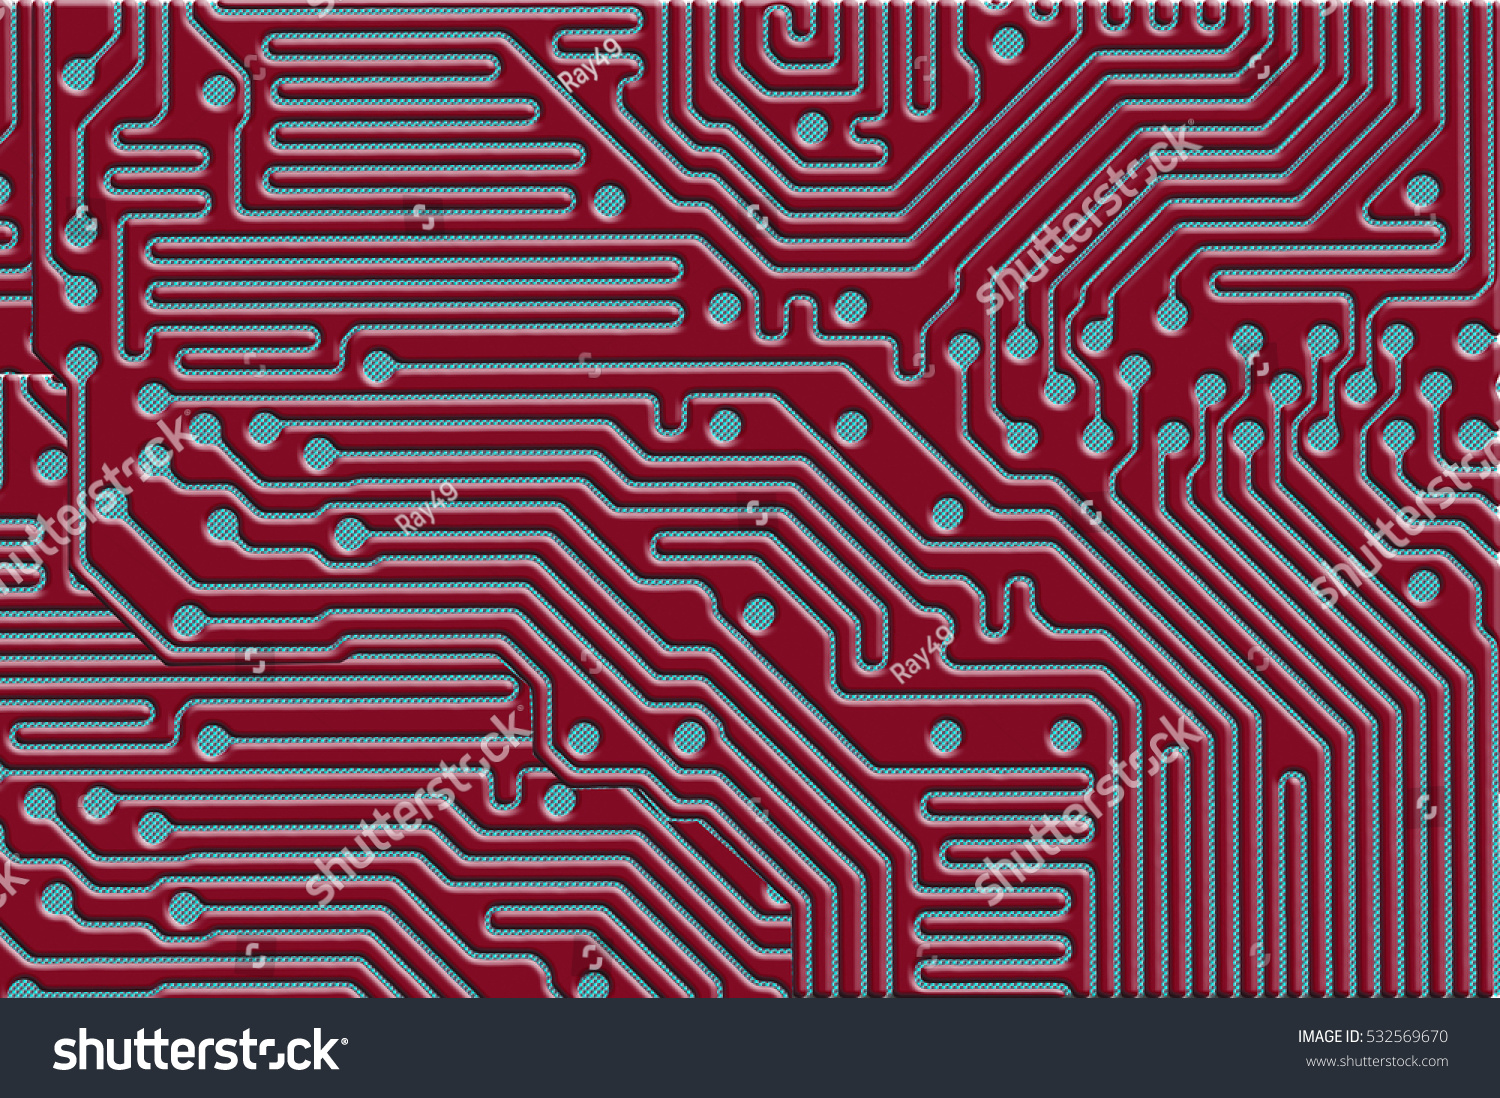 Printed Circuit Board Design Use Background Stock Illustration A For As In Red And Blue